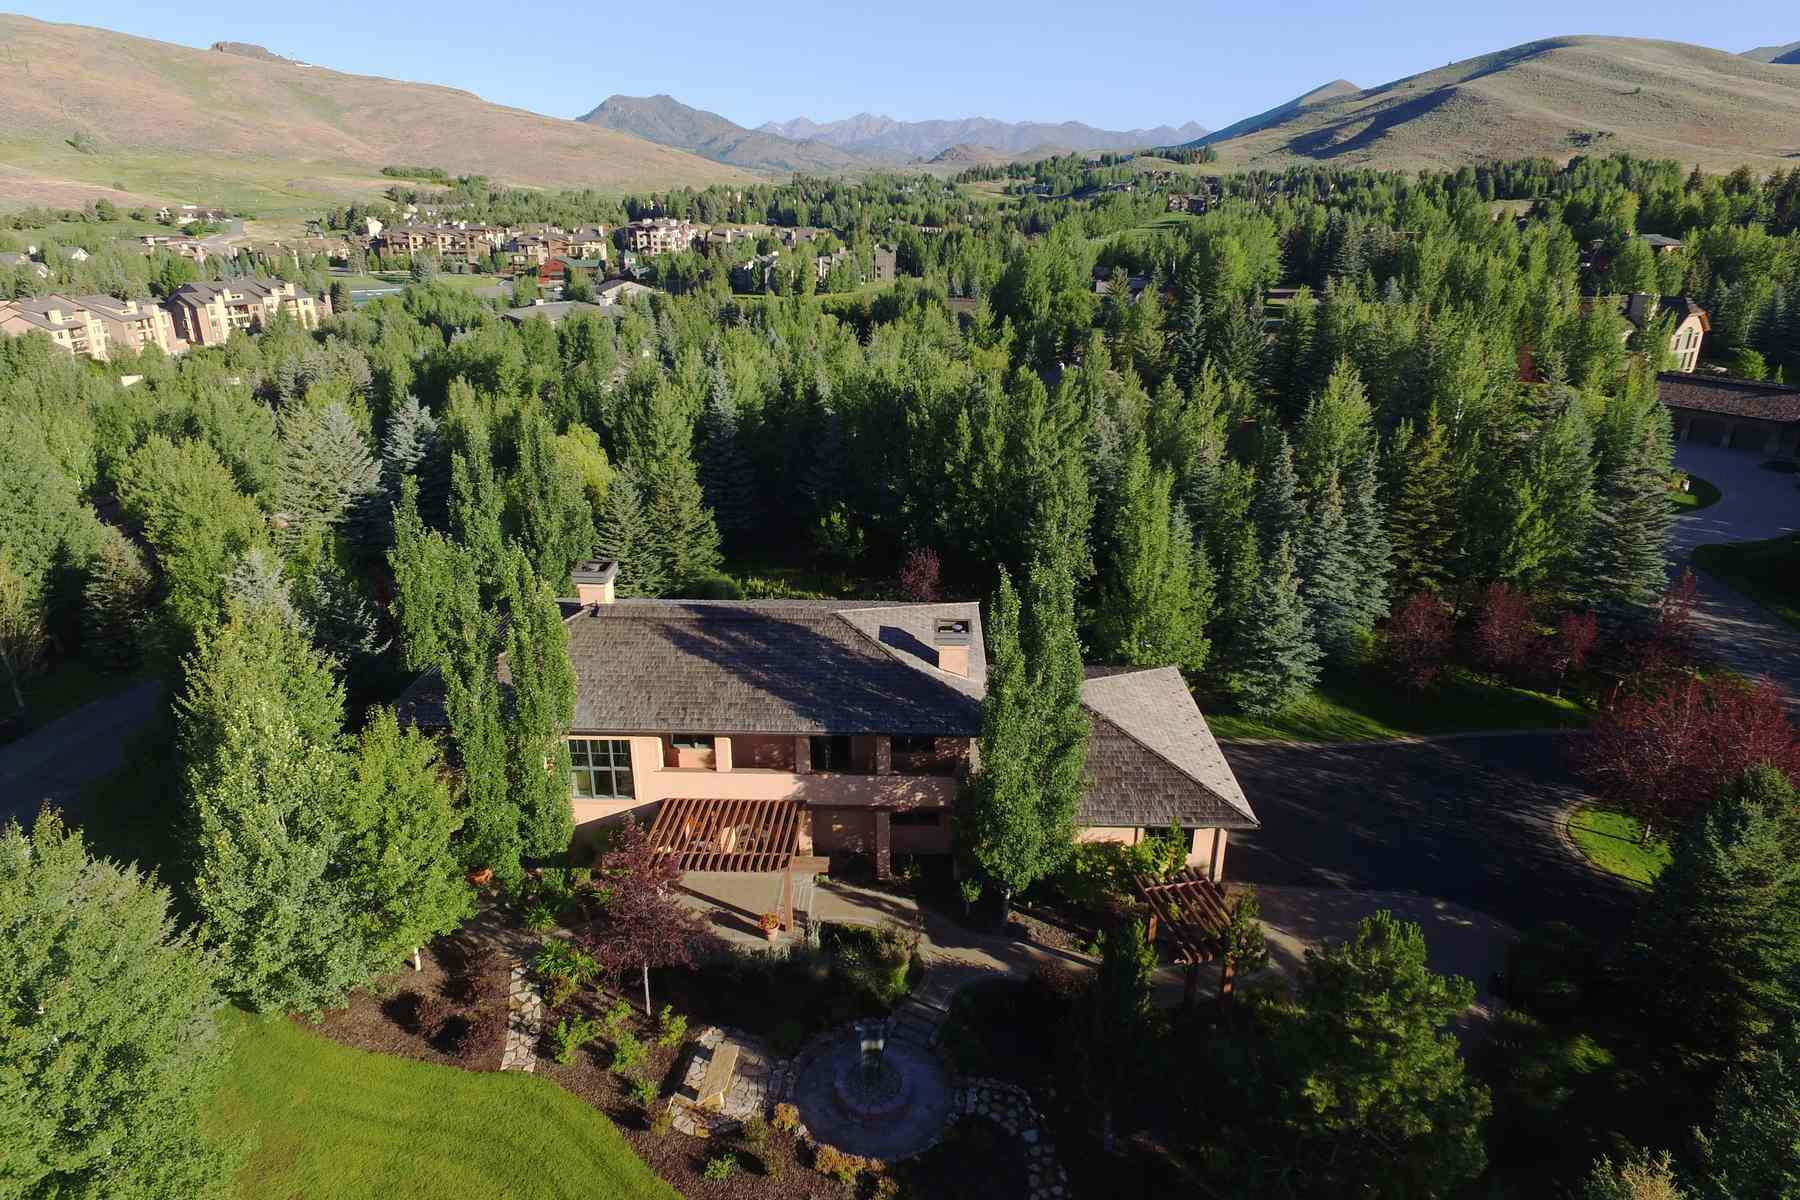 Maison unifamiliale pour l Vente à Tuscany in Sun Valley 115 Highlands Dr Elkhorn, Sun Valley, Idaho, 83353 États-Unis